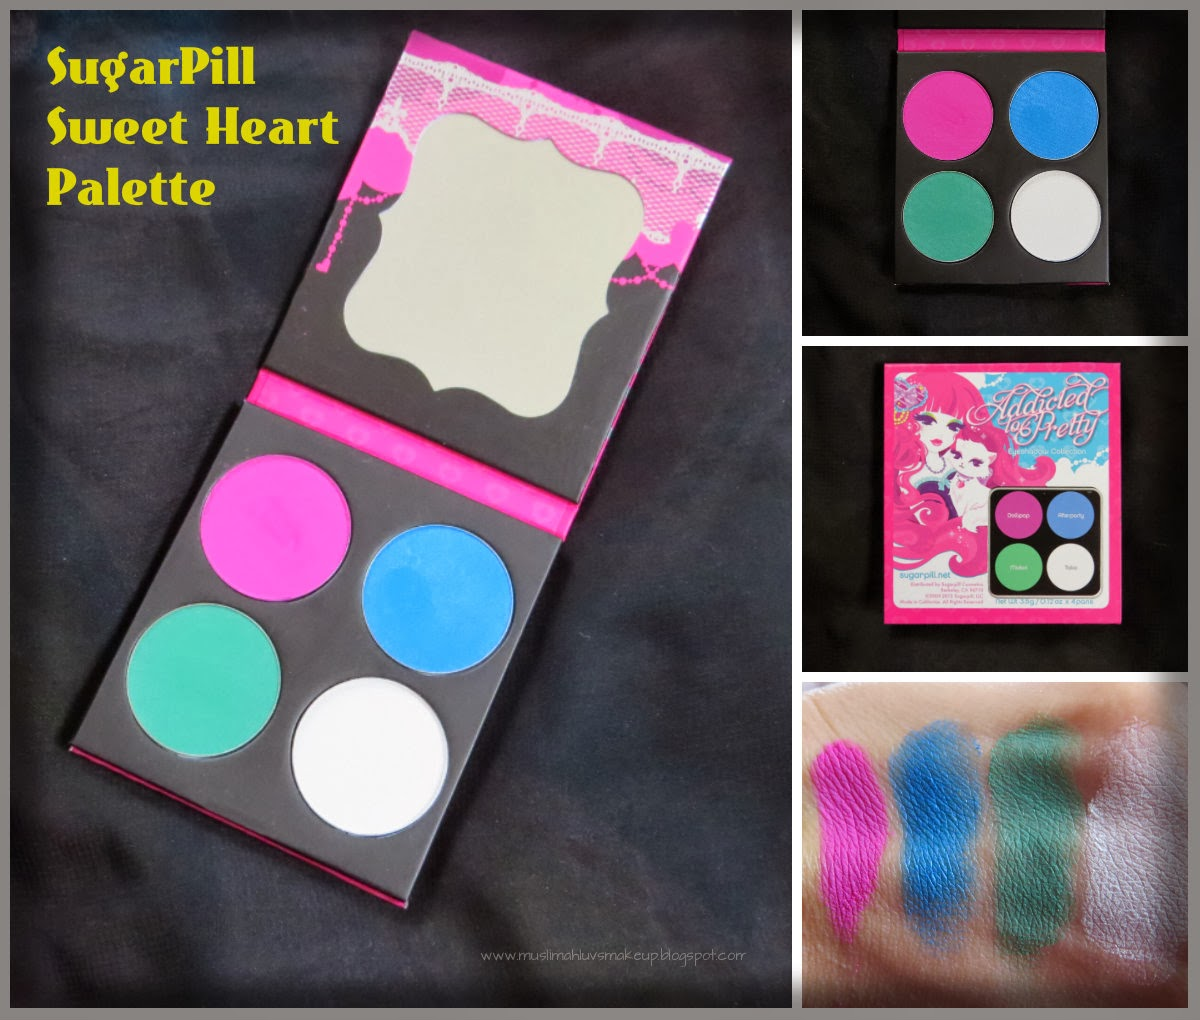 Muslimahluvsmakeup sugarpill eyeshadow palettes review for Palette 34